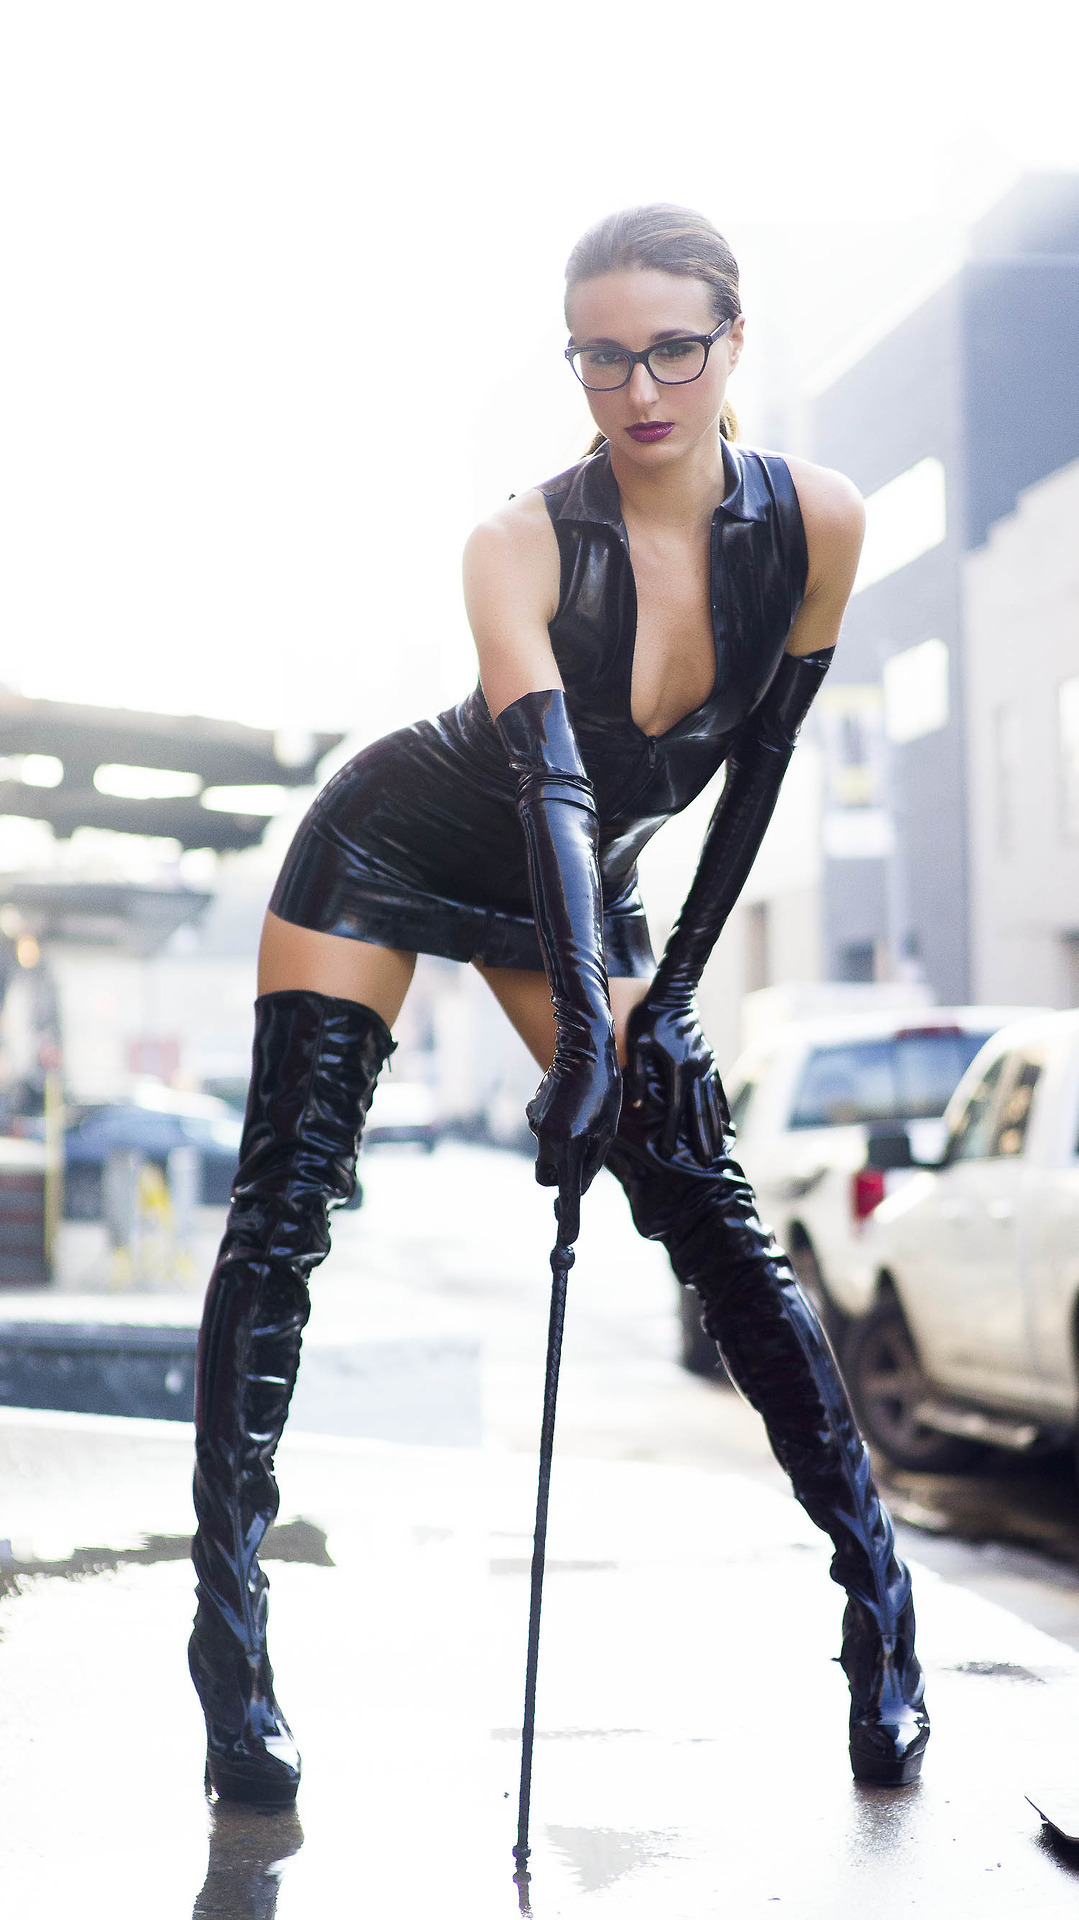 ex girlfriend solo ass fingering free porn tube Boots Tighthighboots Overkneeboots Latexboots Sexy Latex Vinyl Vinylboots Shameless69